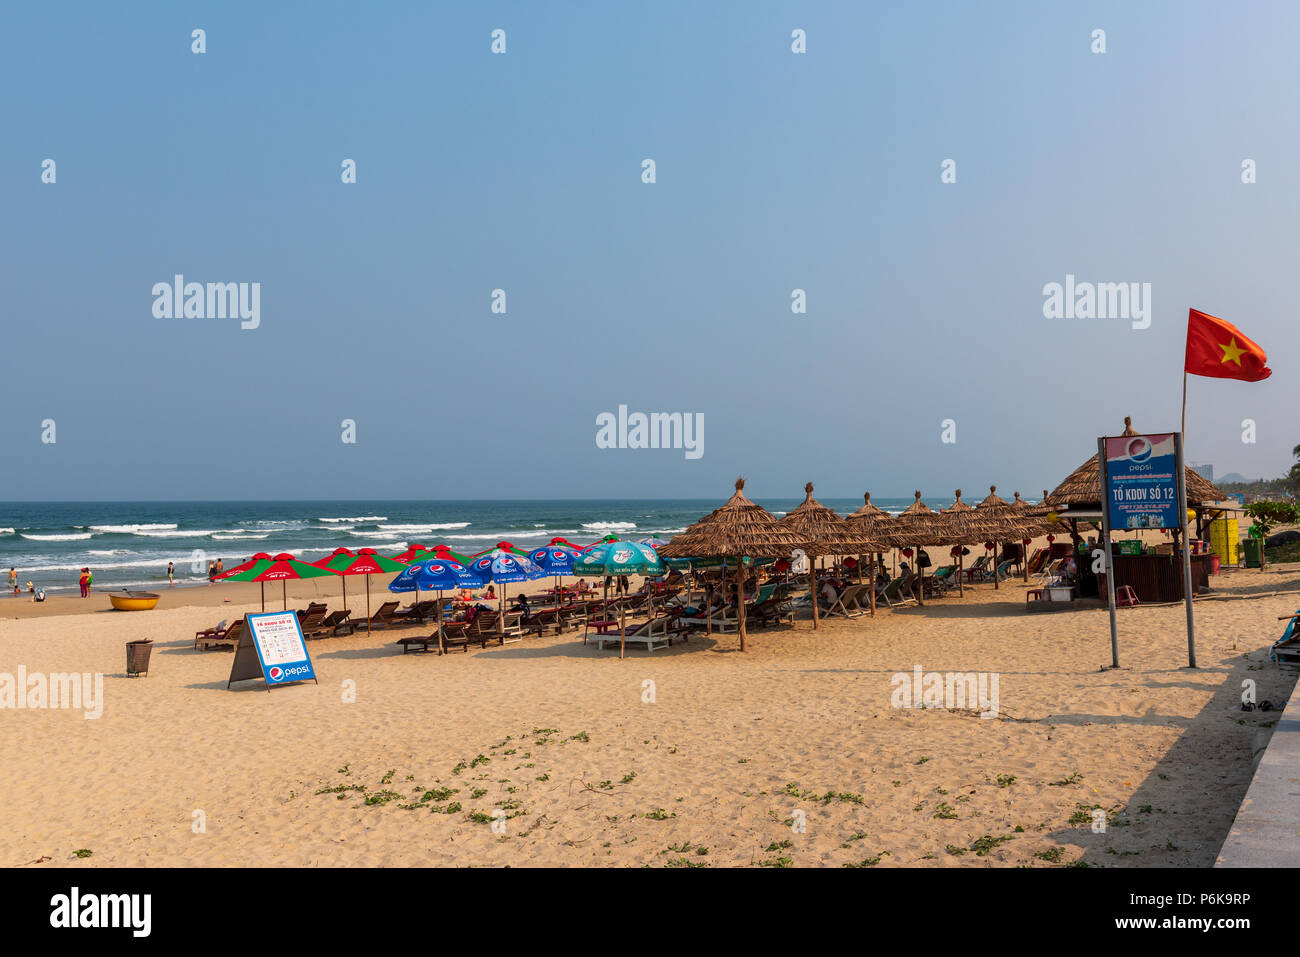 Da Nang, Vietnam--March 23, 2016. Sun bathers relax on lounge chairs and swim in the South China Sea at the popular China Beach. - Stock Image